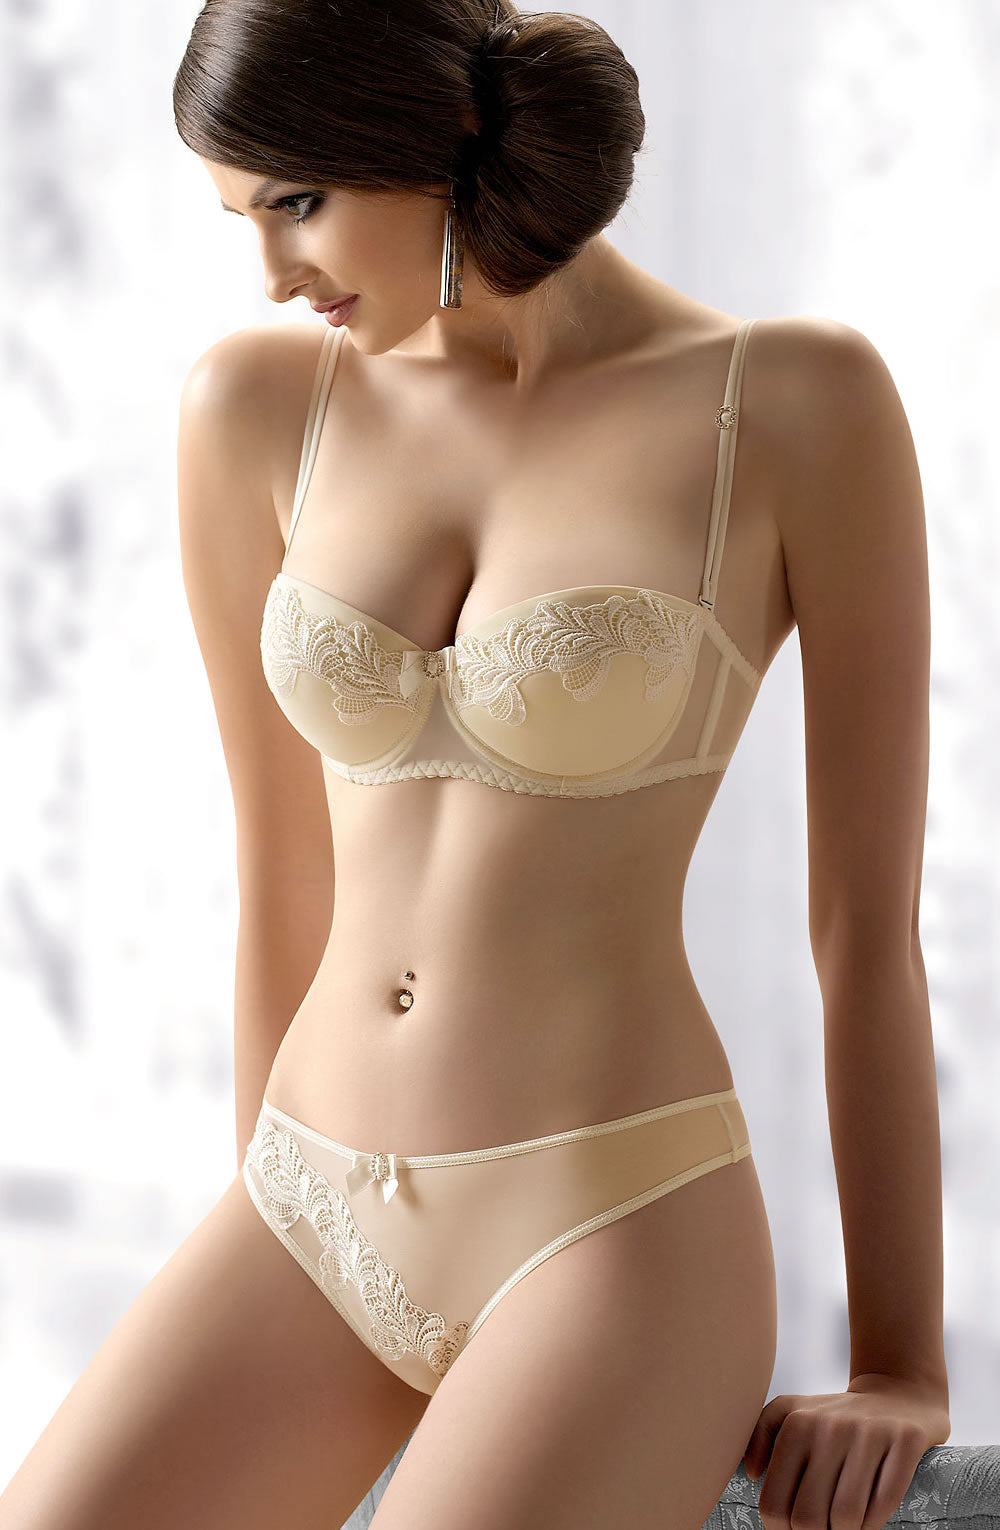 Gracya Stunning Evelyn Bra